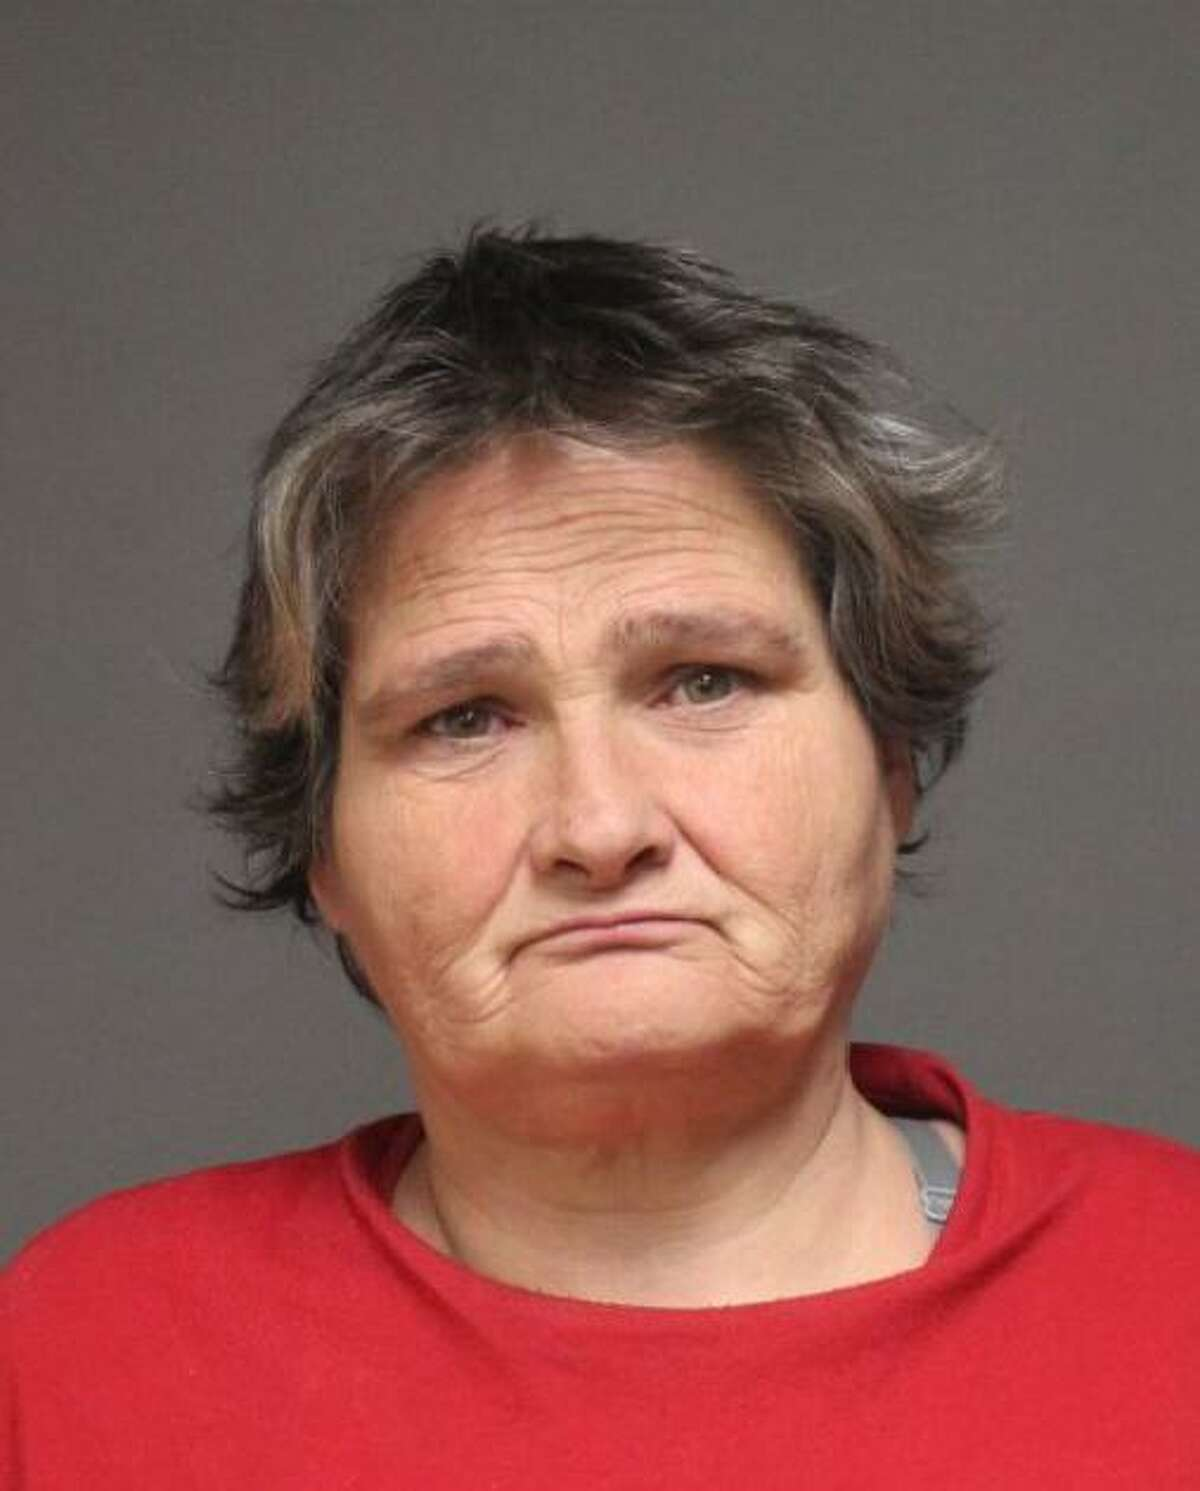 Lisa Dennis, 48, was arrested on March 15 and charged with third-degree assault, second-degree disorderly conduct and interfering with an officer. She was also charged for the prior alleged offenses of sixth-degree larceny and interfering with an officer.